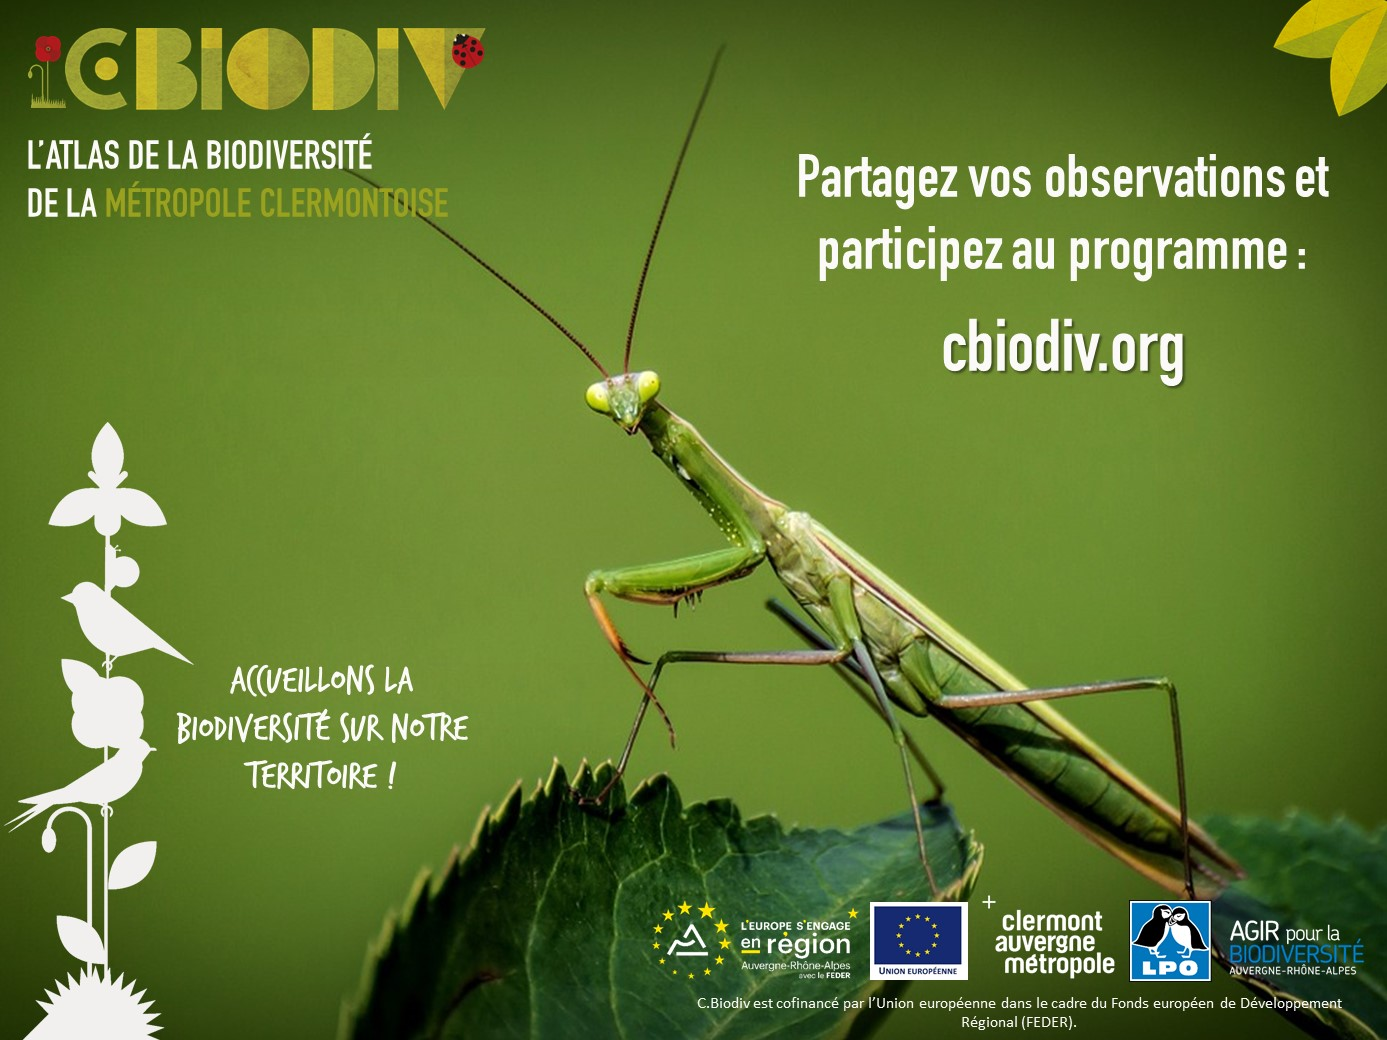 http://files.biolovision.net/www.faune-auvergne.org/userfiles/ParticipezaCBIODIV.jpg